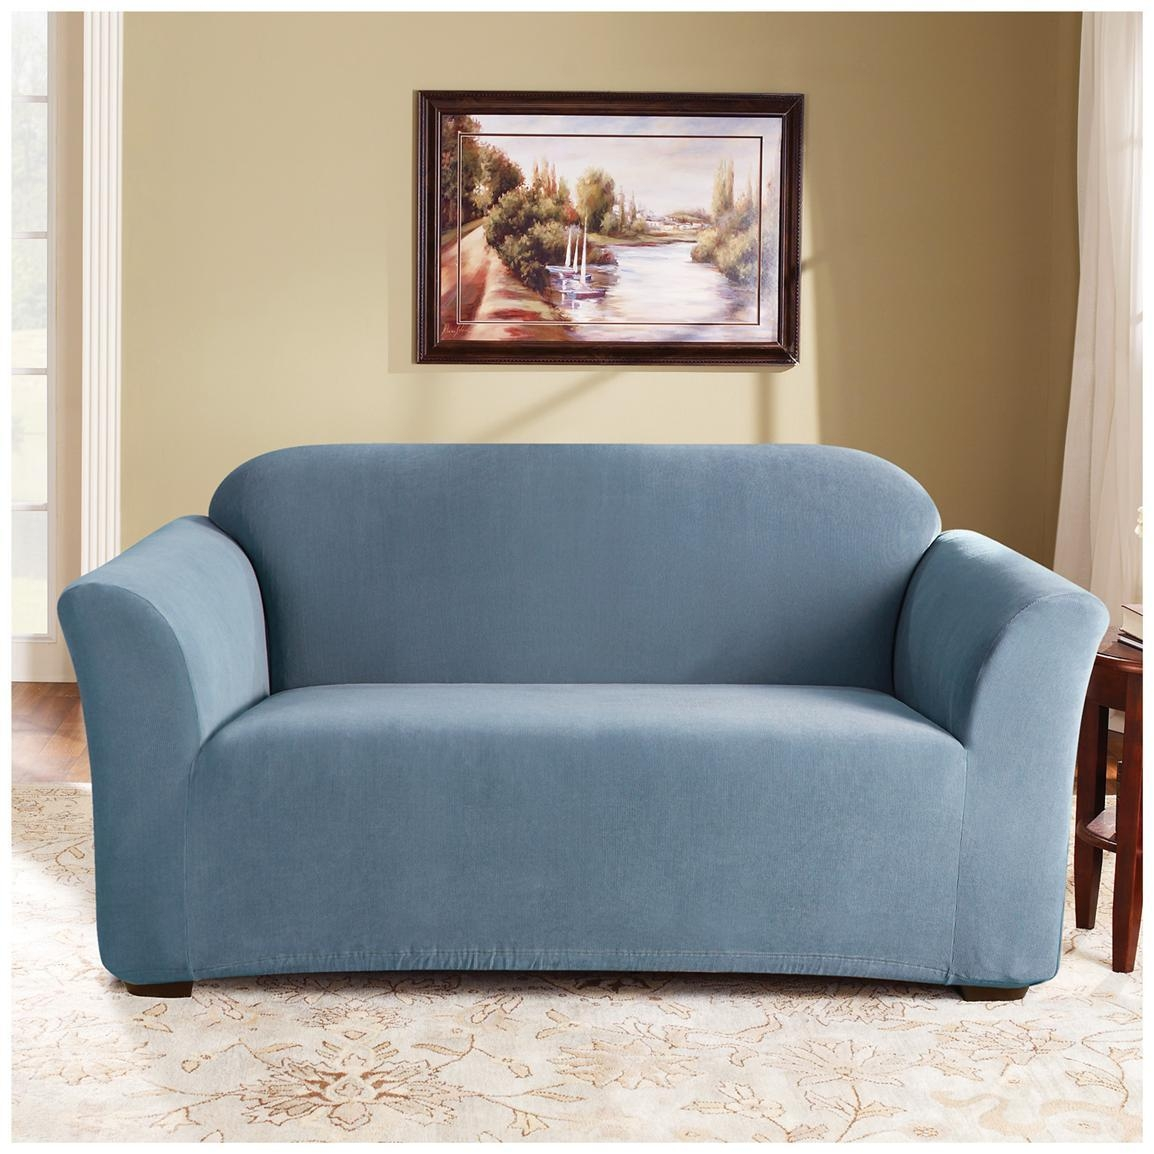 Sure Fit® Stretch Pearson Sofa Slipcover – 292823, Furniture Intended For Stretch Slipcovers For Sofas (Image 18 of 20)